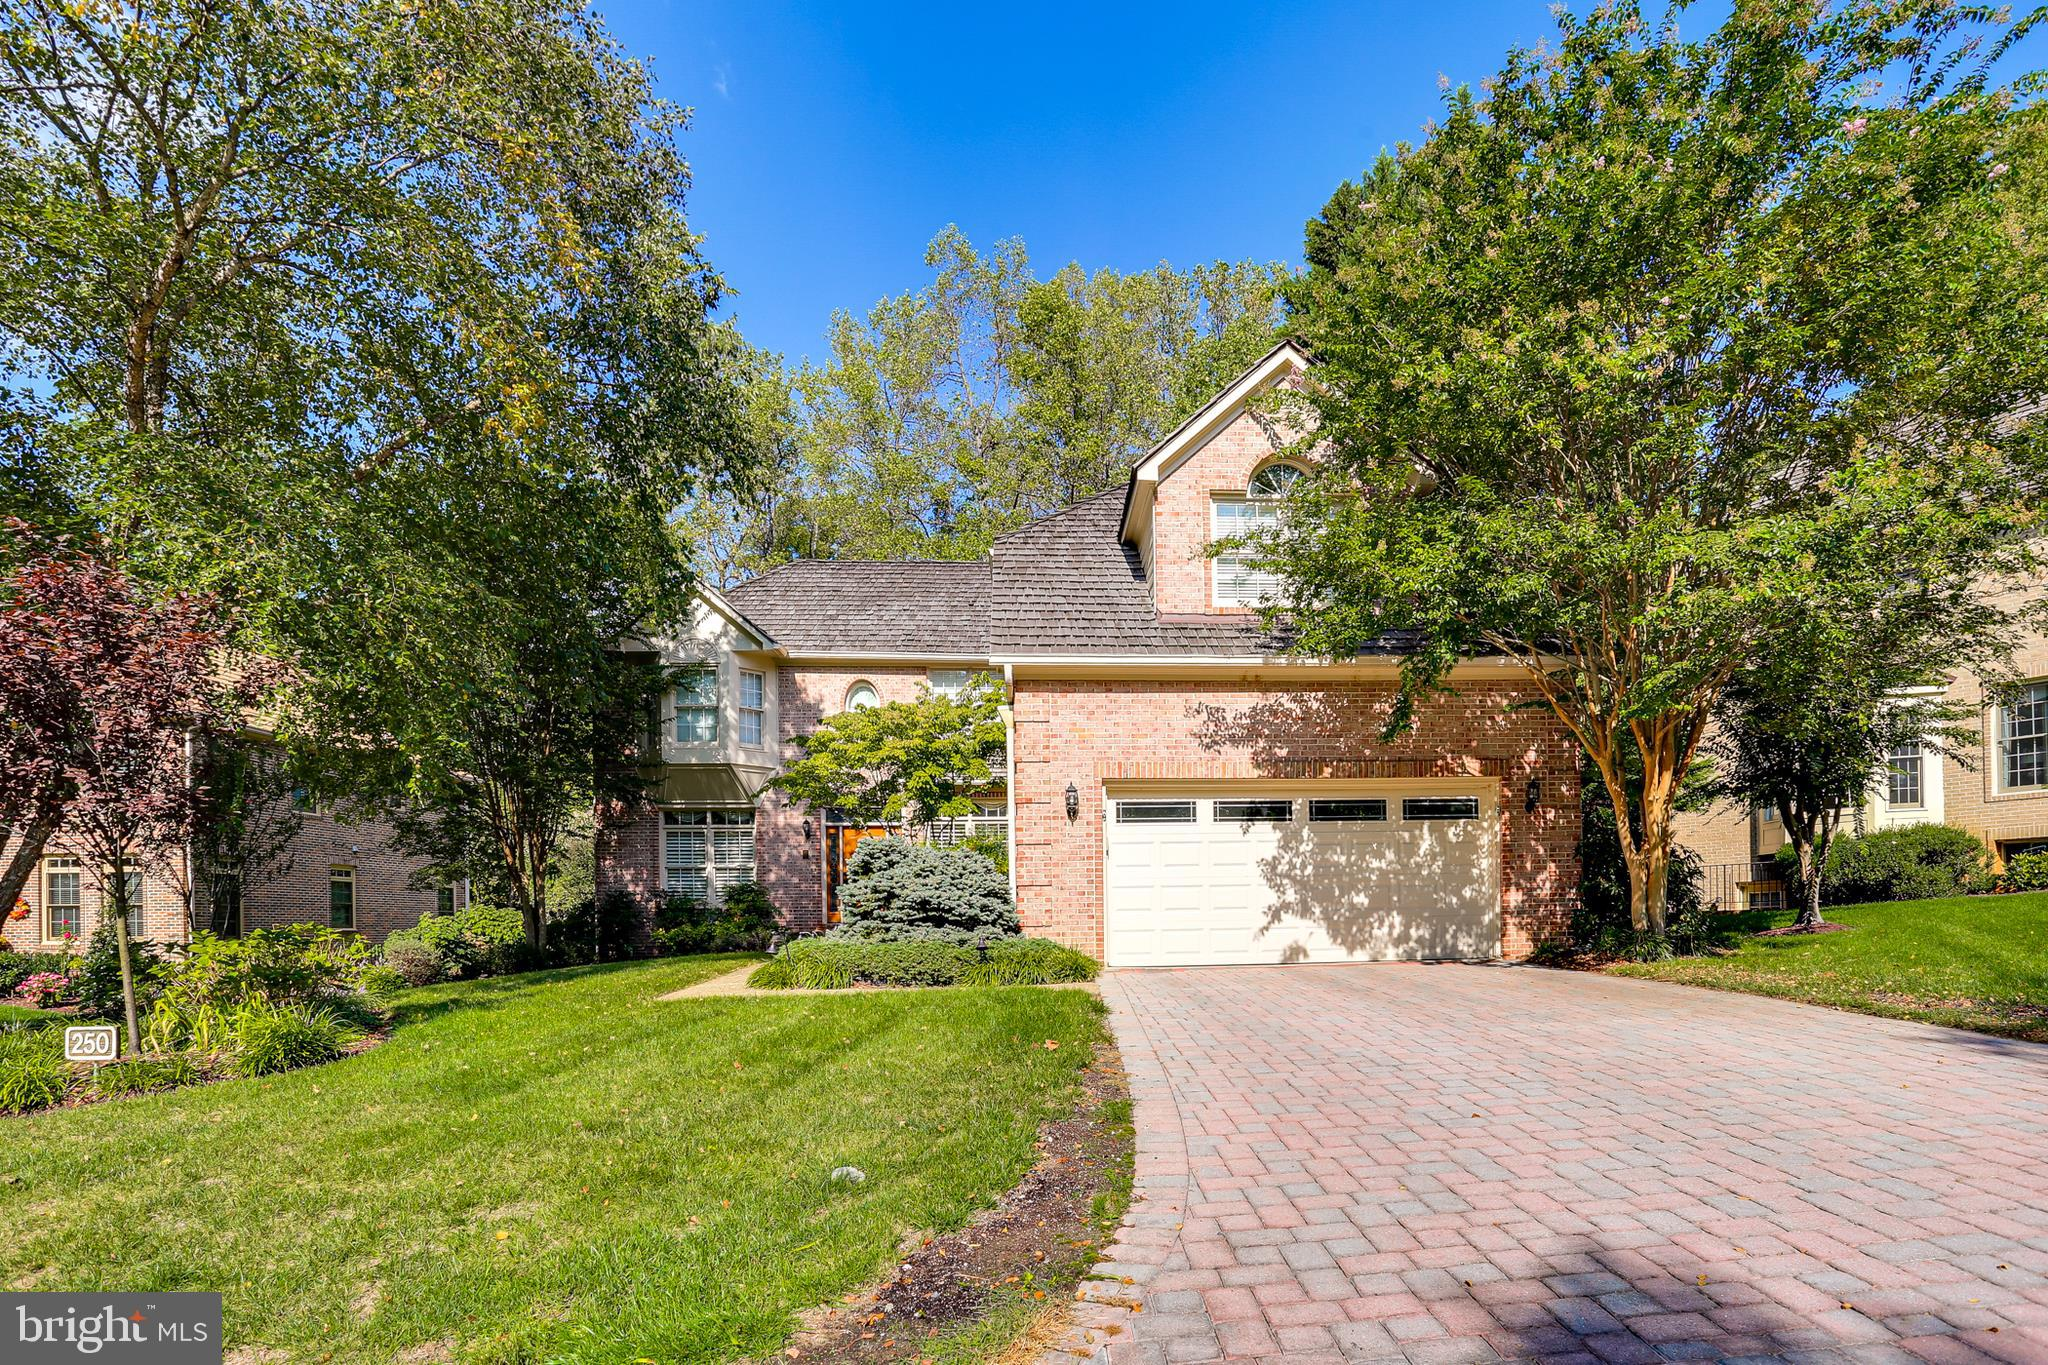 250 S RIVER LANDING ROAD, EDGEWATER, MD 21037